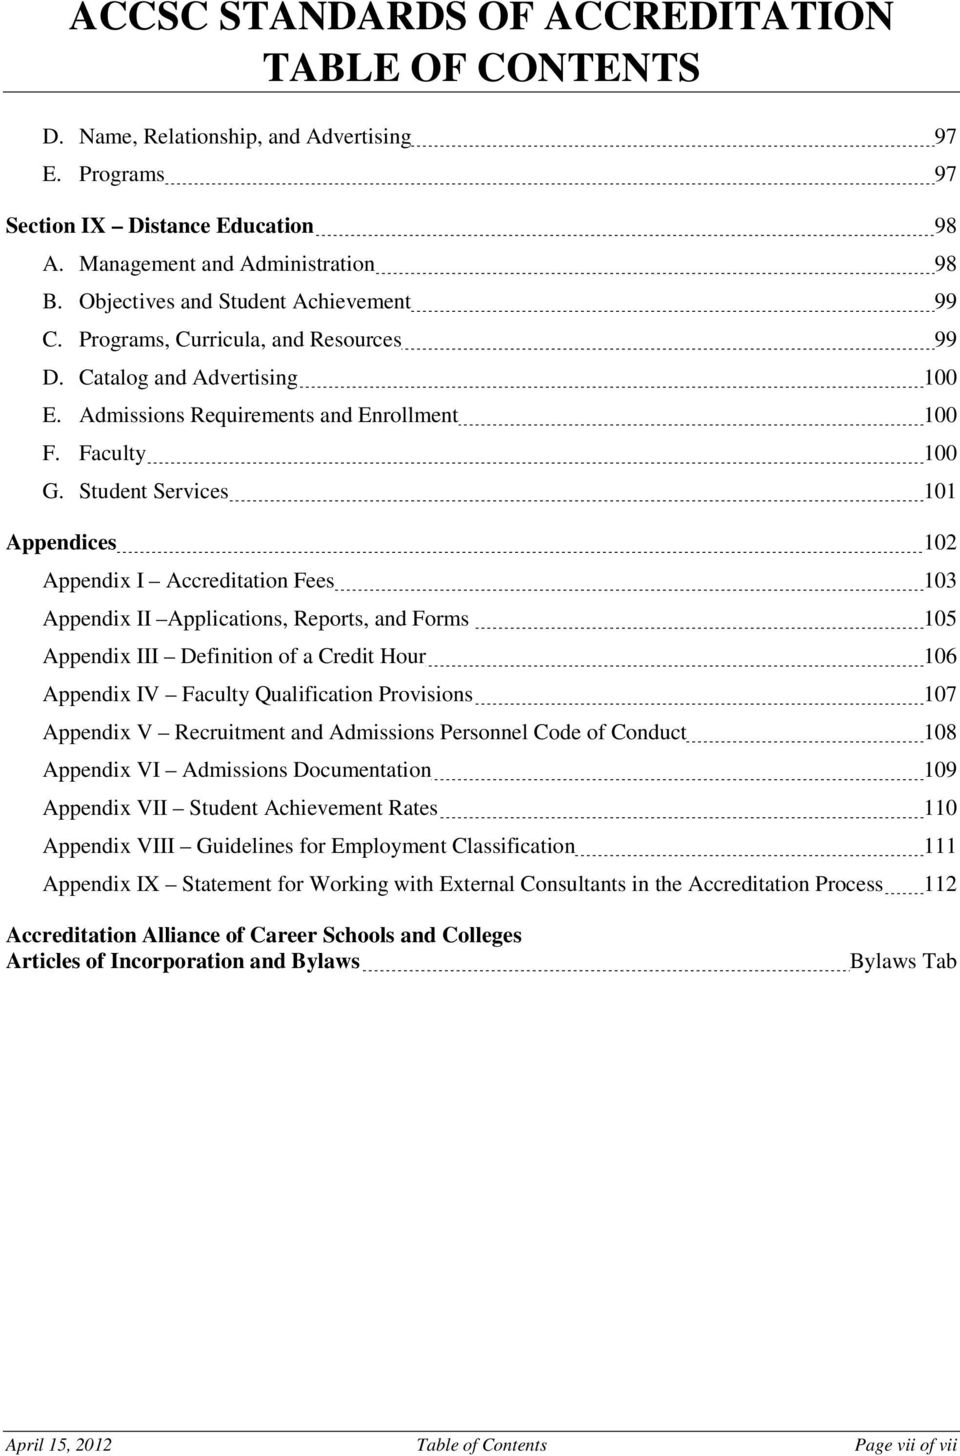 Student Services 101 Appendices 102 Appendix I Accreditation Fees 103 Appendix II Applications, Reports, and Forms 105 Appendix III Definition of a Credit Hour 106 Appendix IV Faculty Qualification